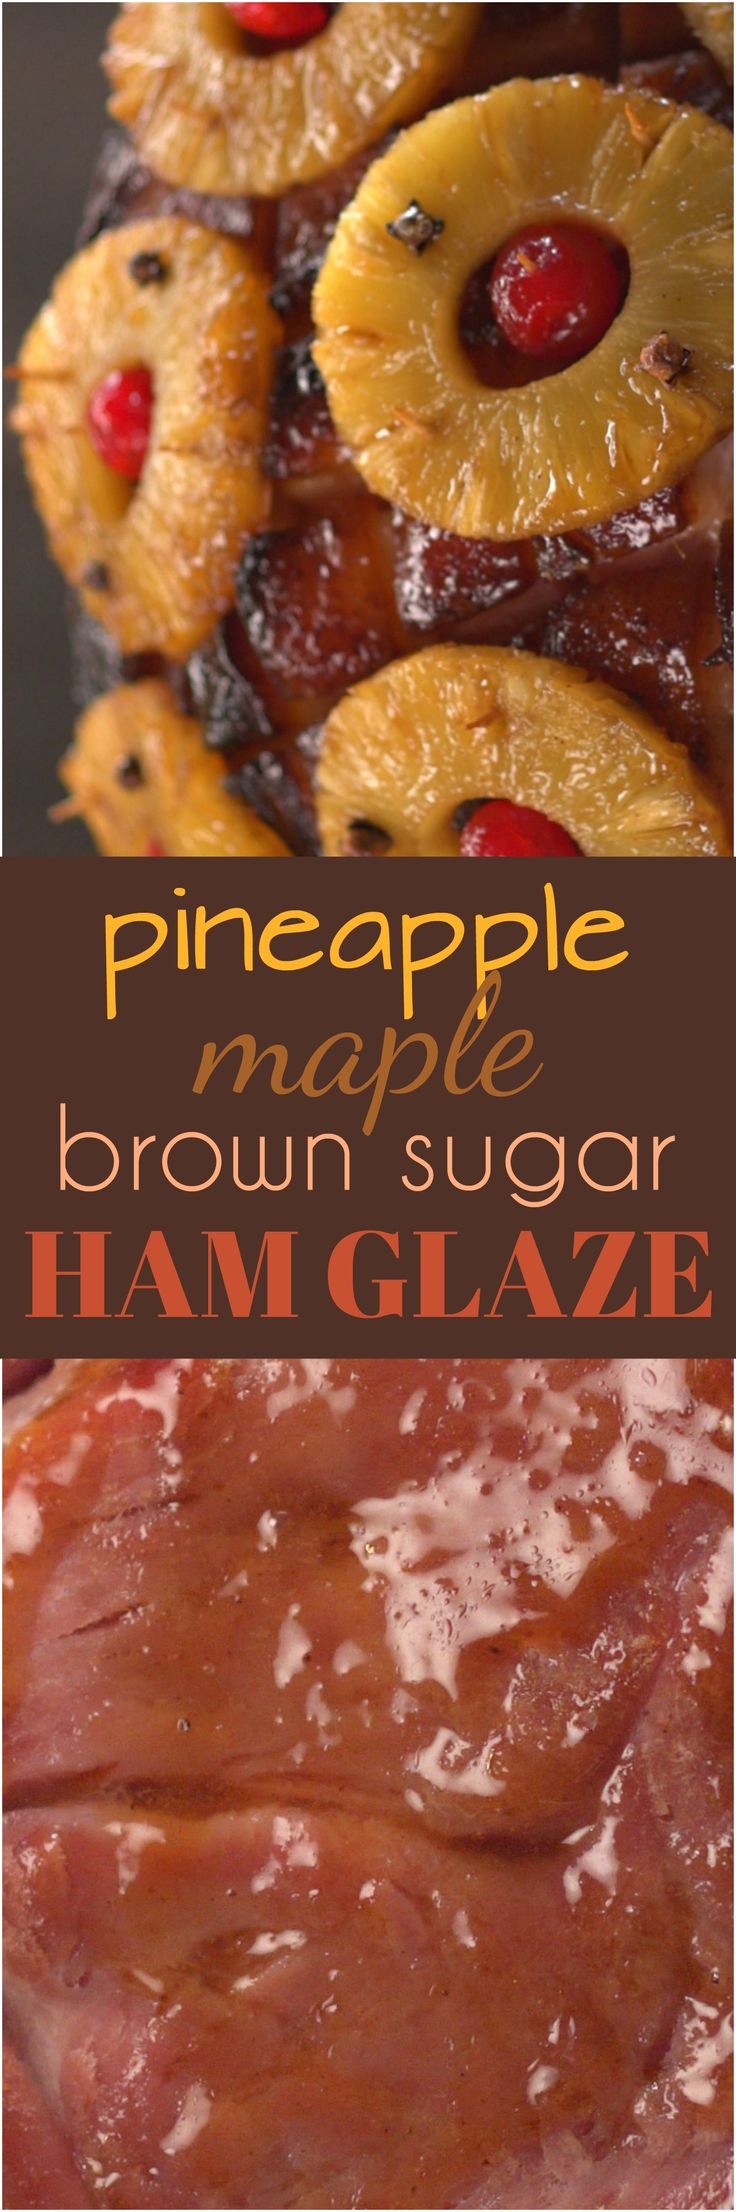 The leftover pineapple juice from the can goes into the bottom of your roasting pan to make the ham extra moist and flavorful. Plus, we'll show you how to transform the drippings into a homemade gravy so delicious you'll want to drown all the side dishes in it.